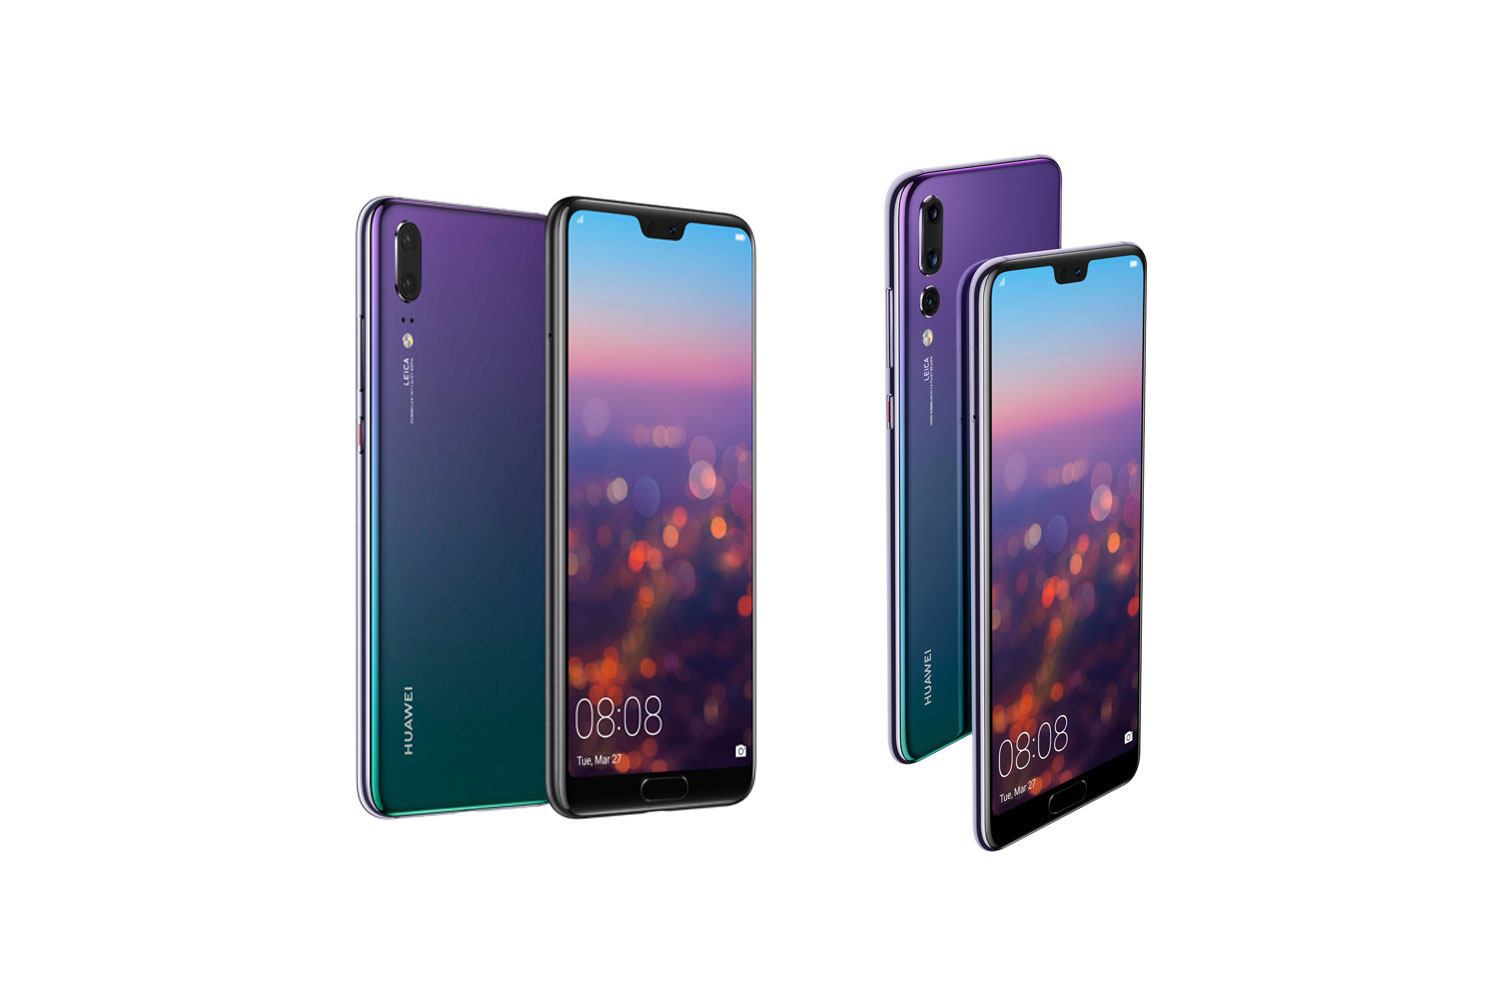 Huawei P20 Pro Wallpaper: Huawei P20 And P20 Pro Officially Announced